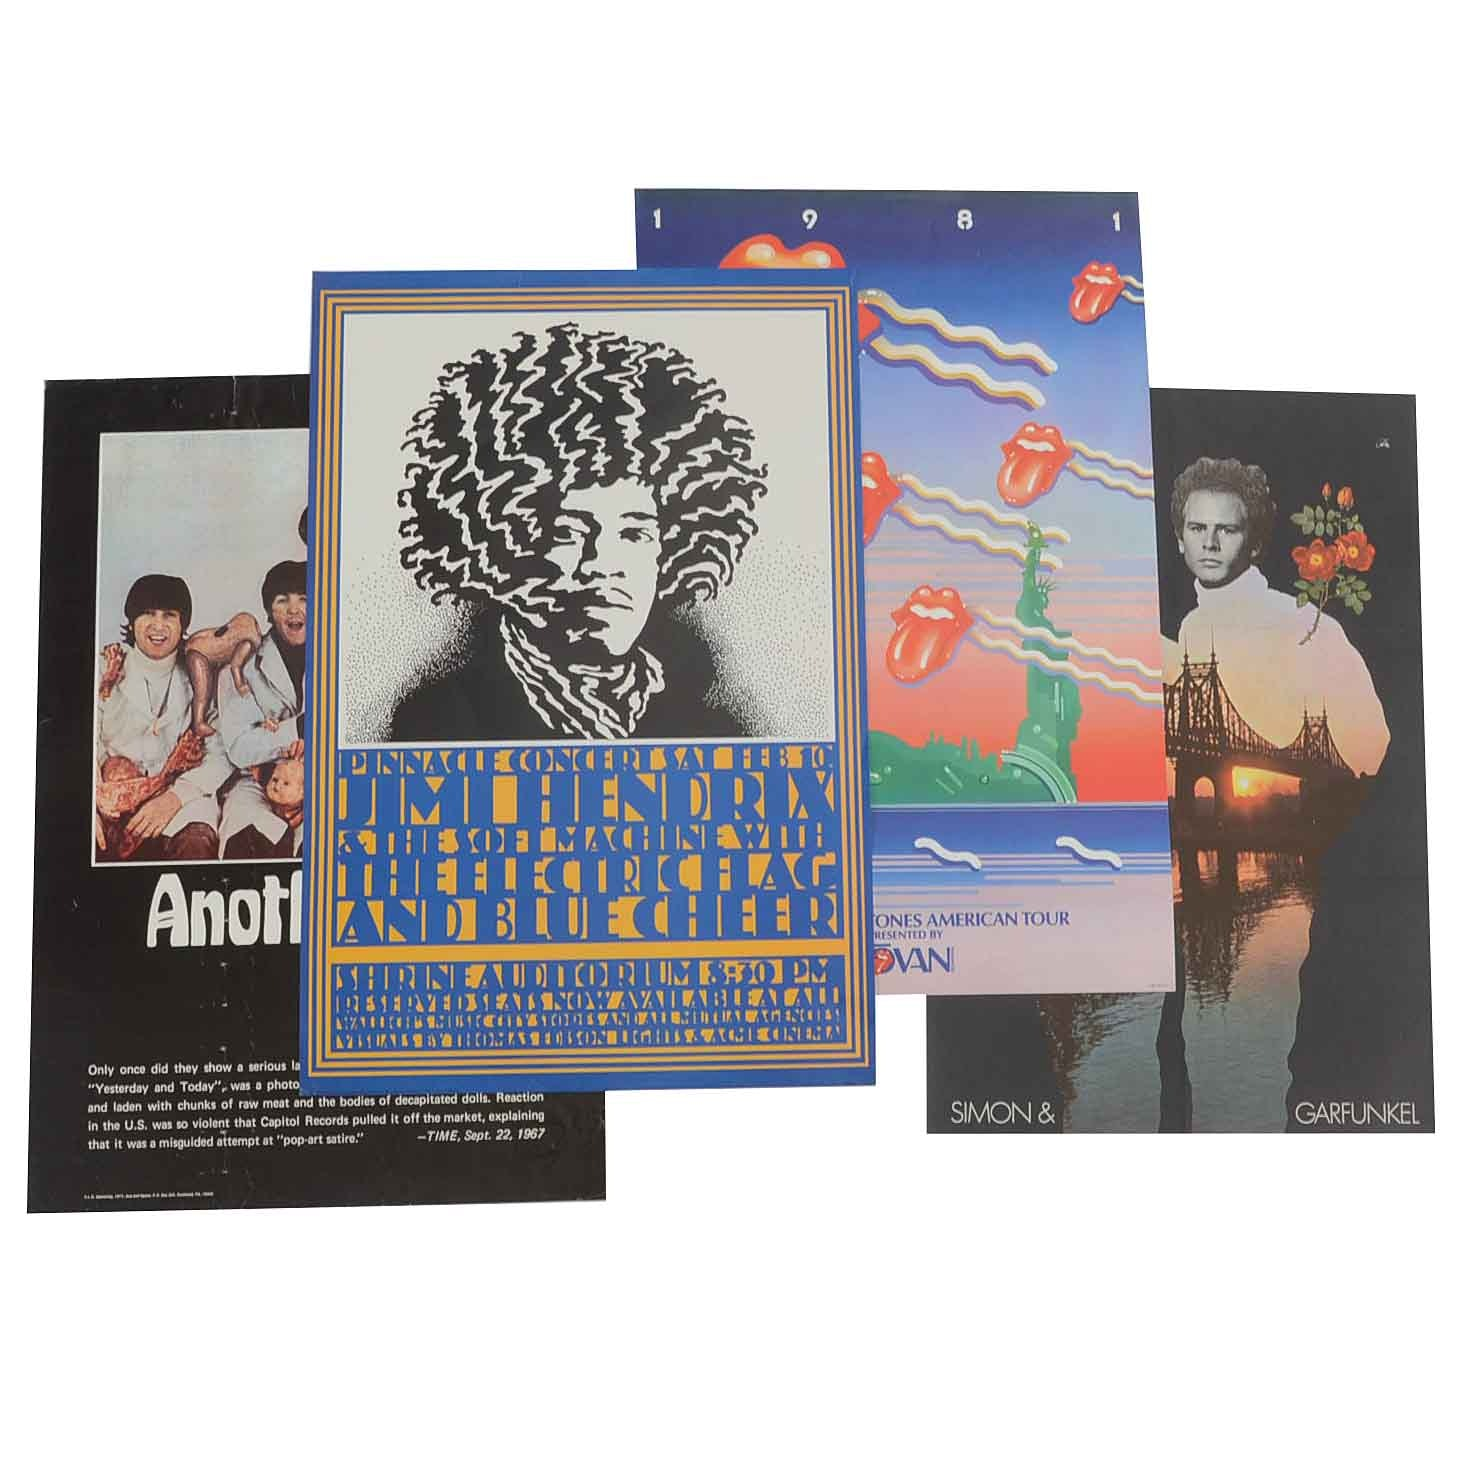 Collection of Four Vintage Lithographic Posters Featuring Rock Bands